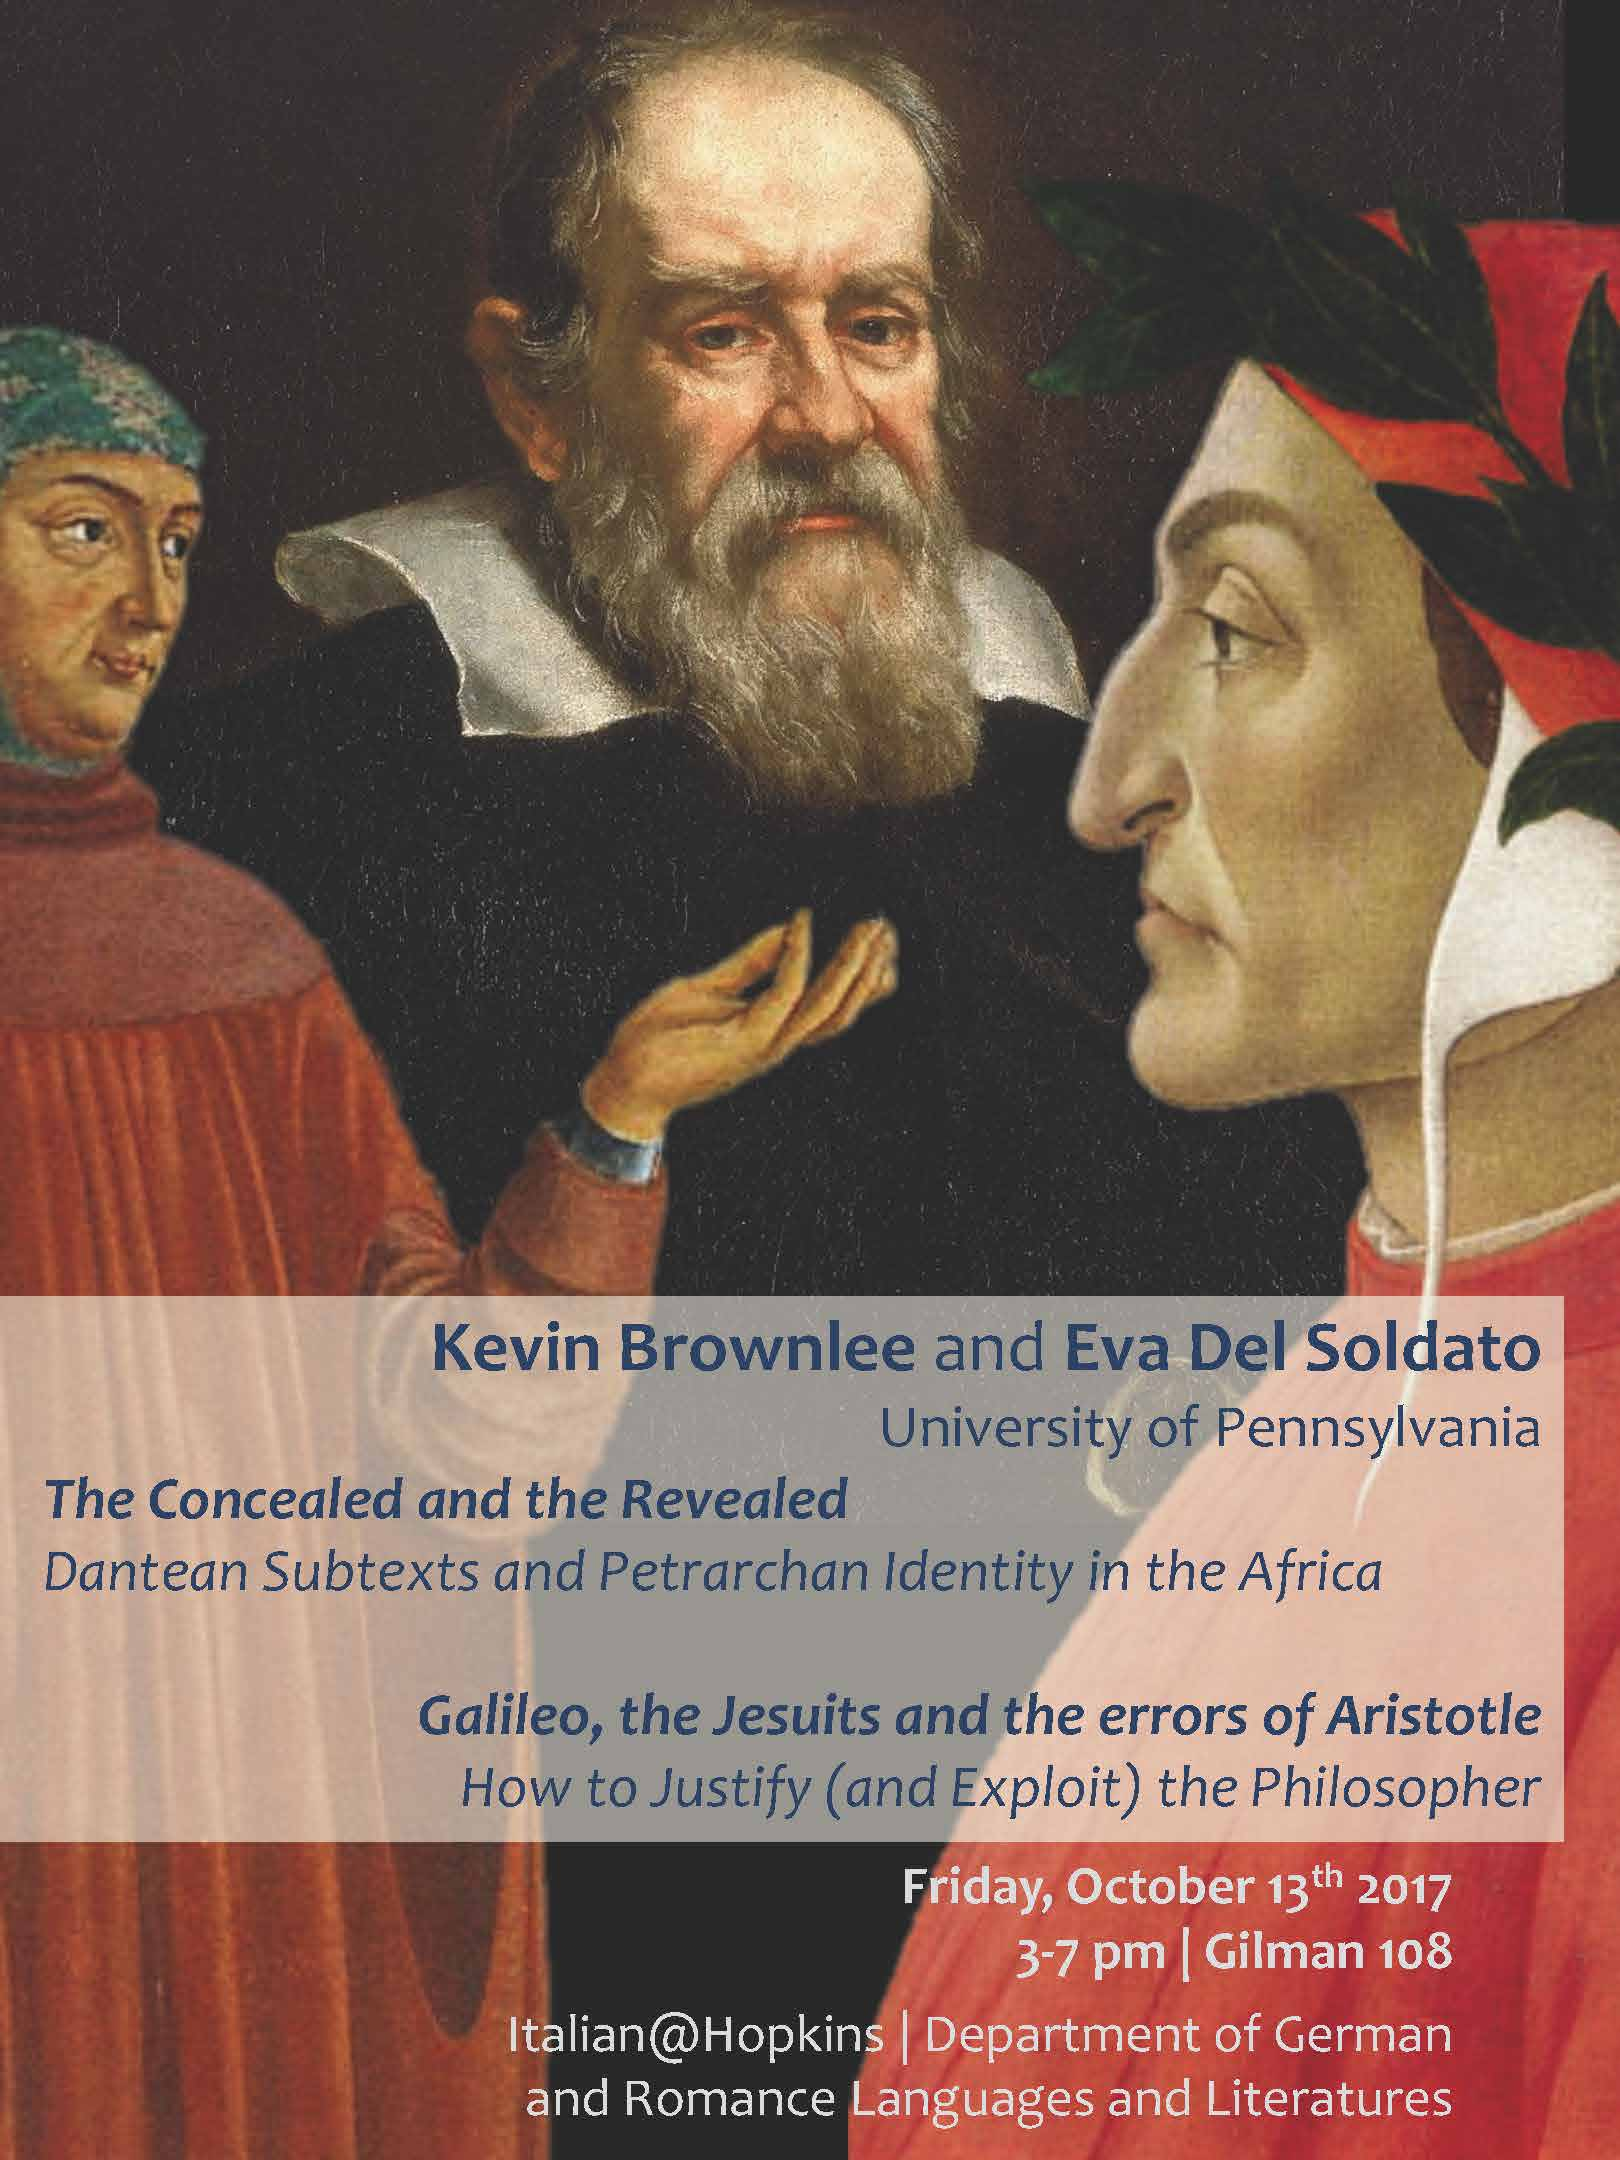 Lectures by Eva Del Soldato and Kevin Brownlee coming October 13